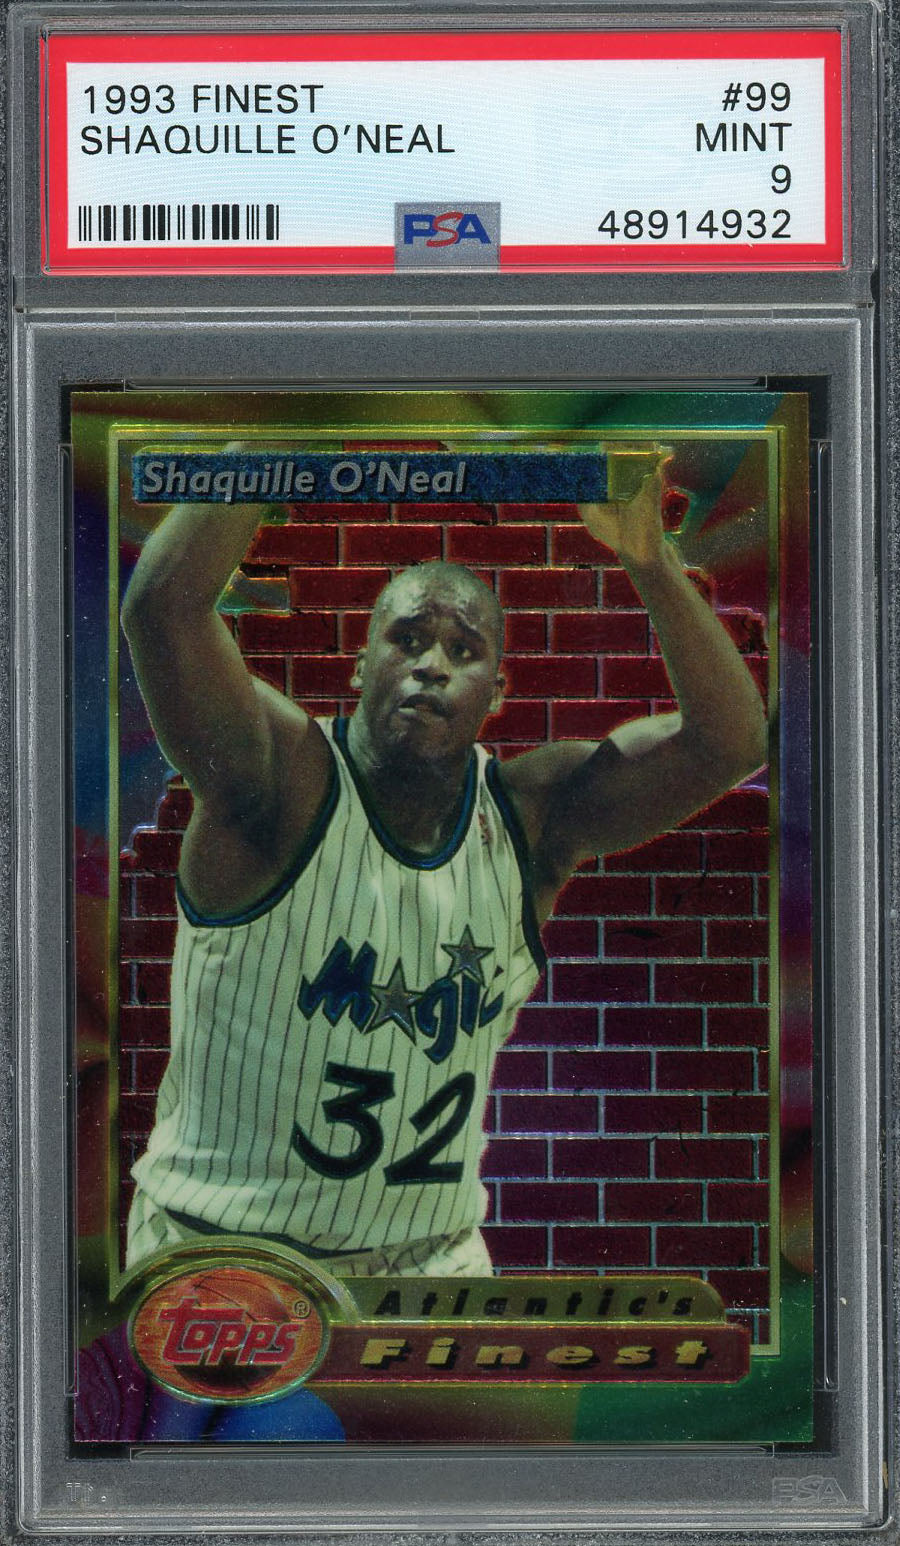 Shaquille O'Neal Orlando Magic 1993 Topps Finest Basketball #99 Graded PSA 9 MINT-Powers Sports Memorabilia